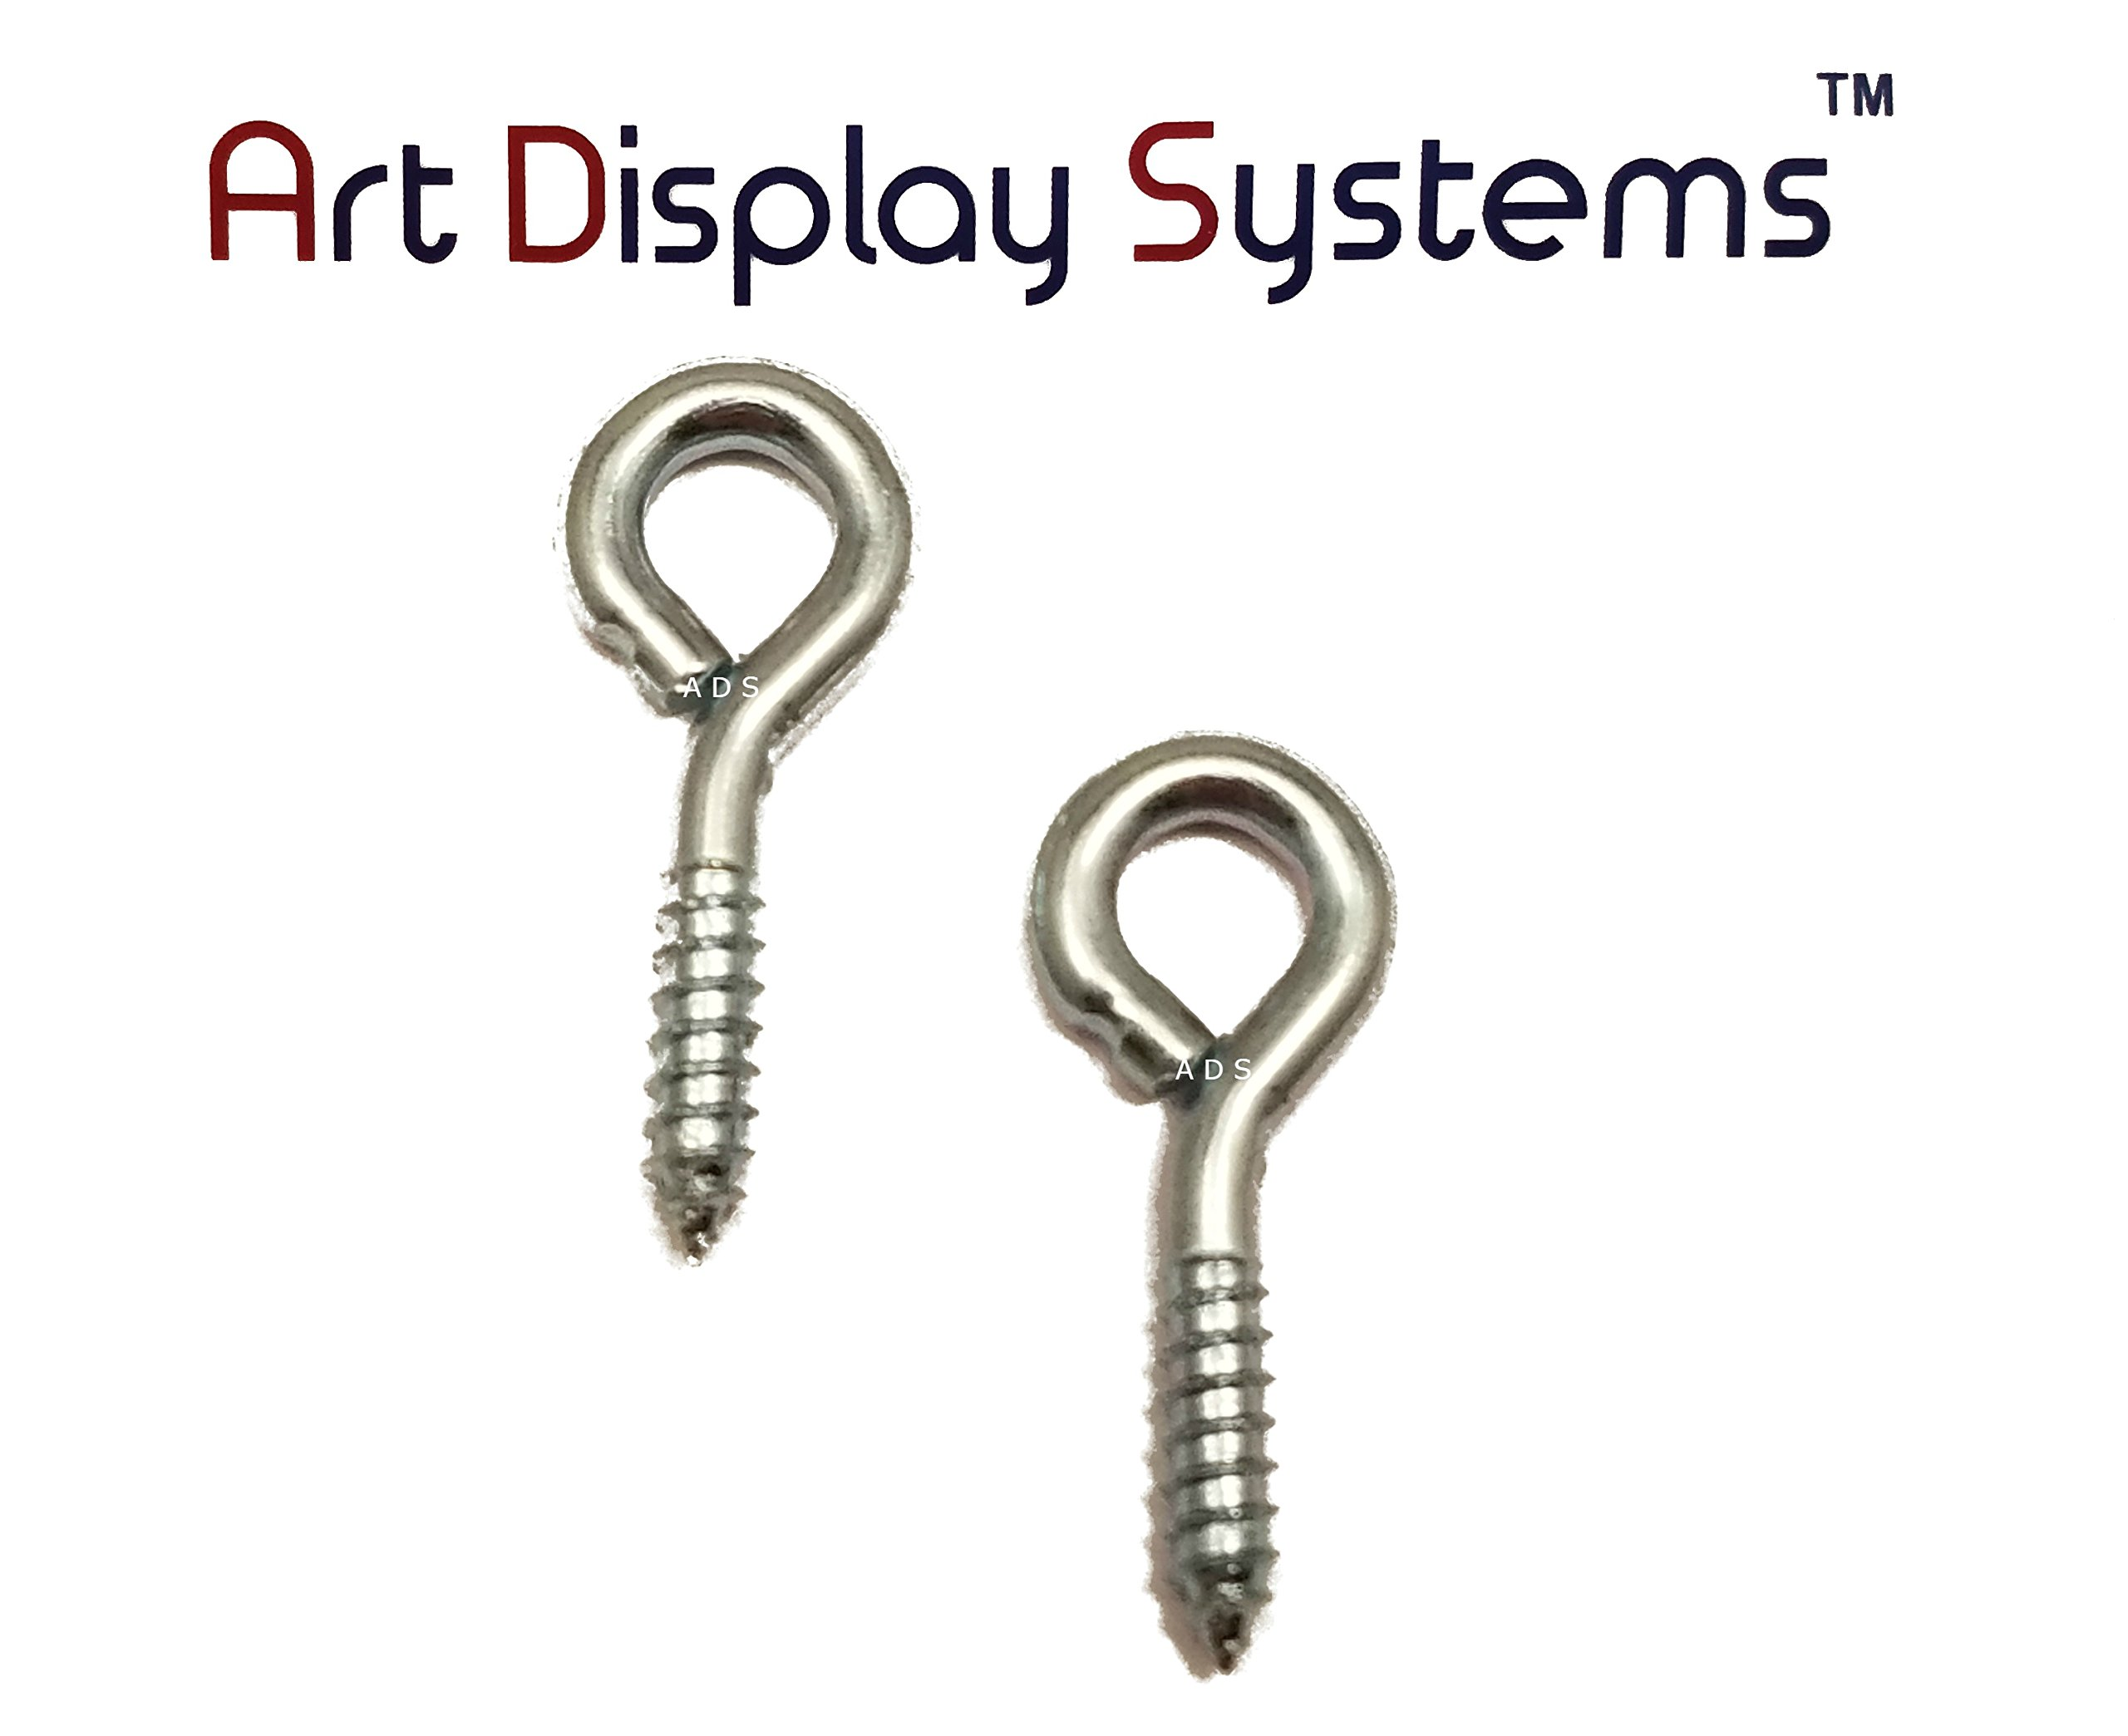 ADS 212 LS ZP Screw Eye - 200 Pack by ART DISPLAY SYSTEMS